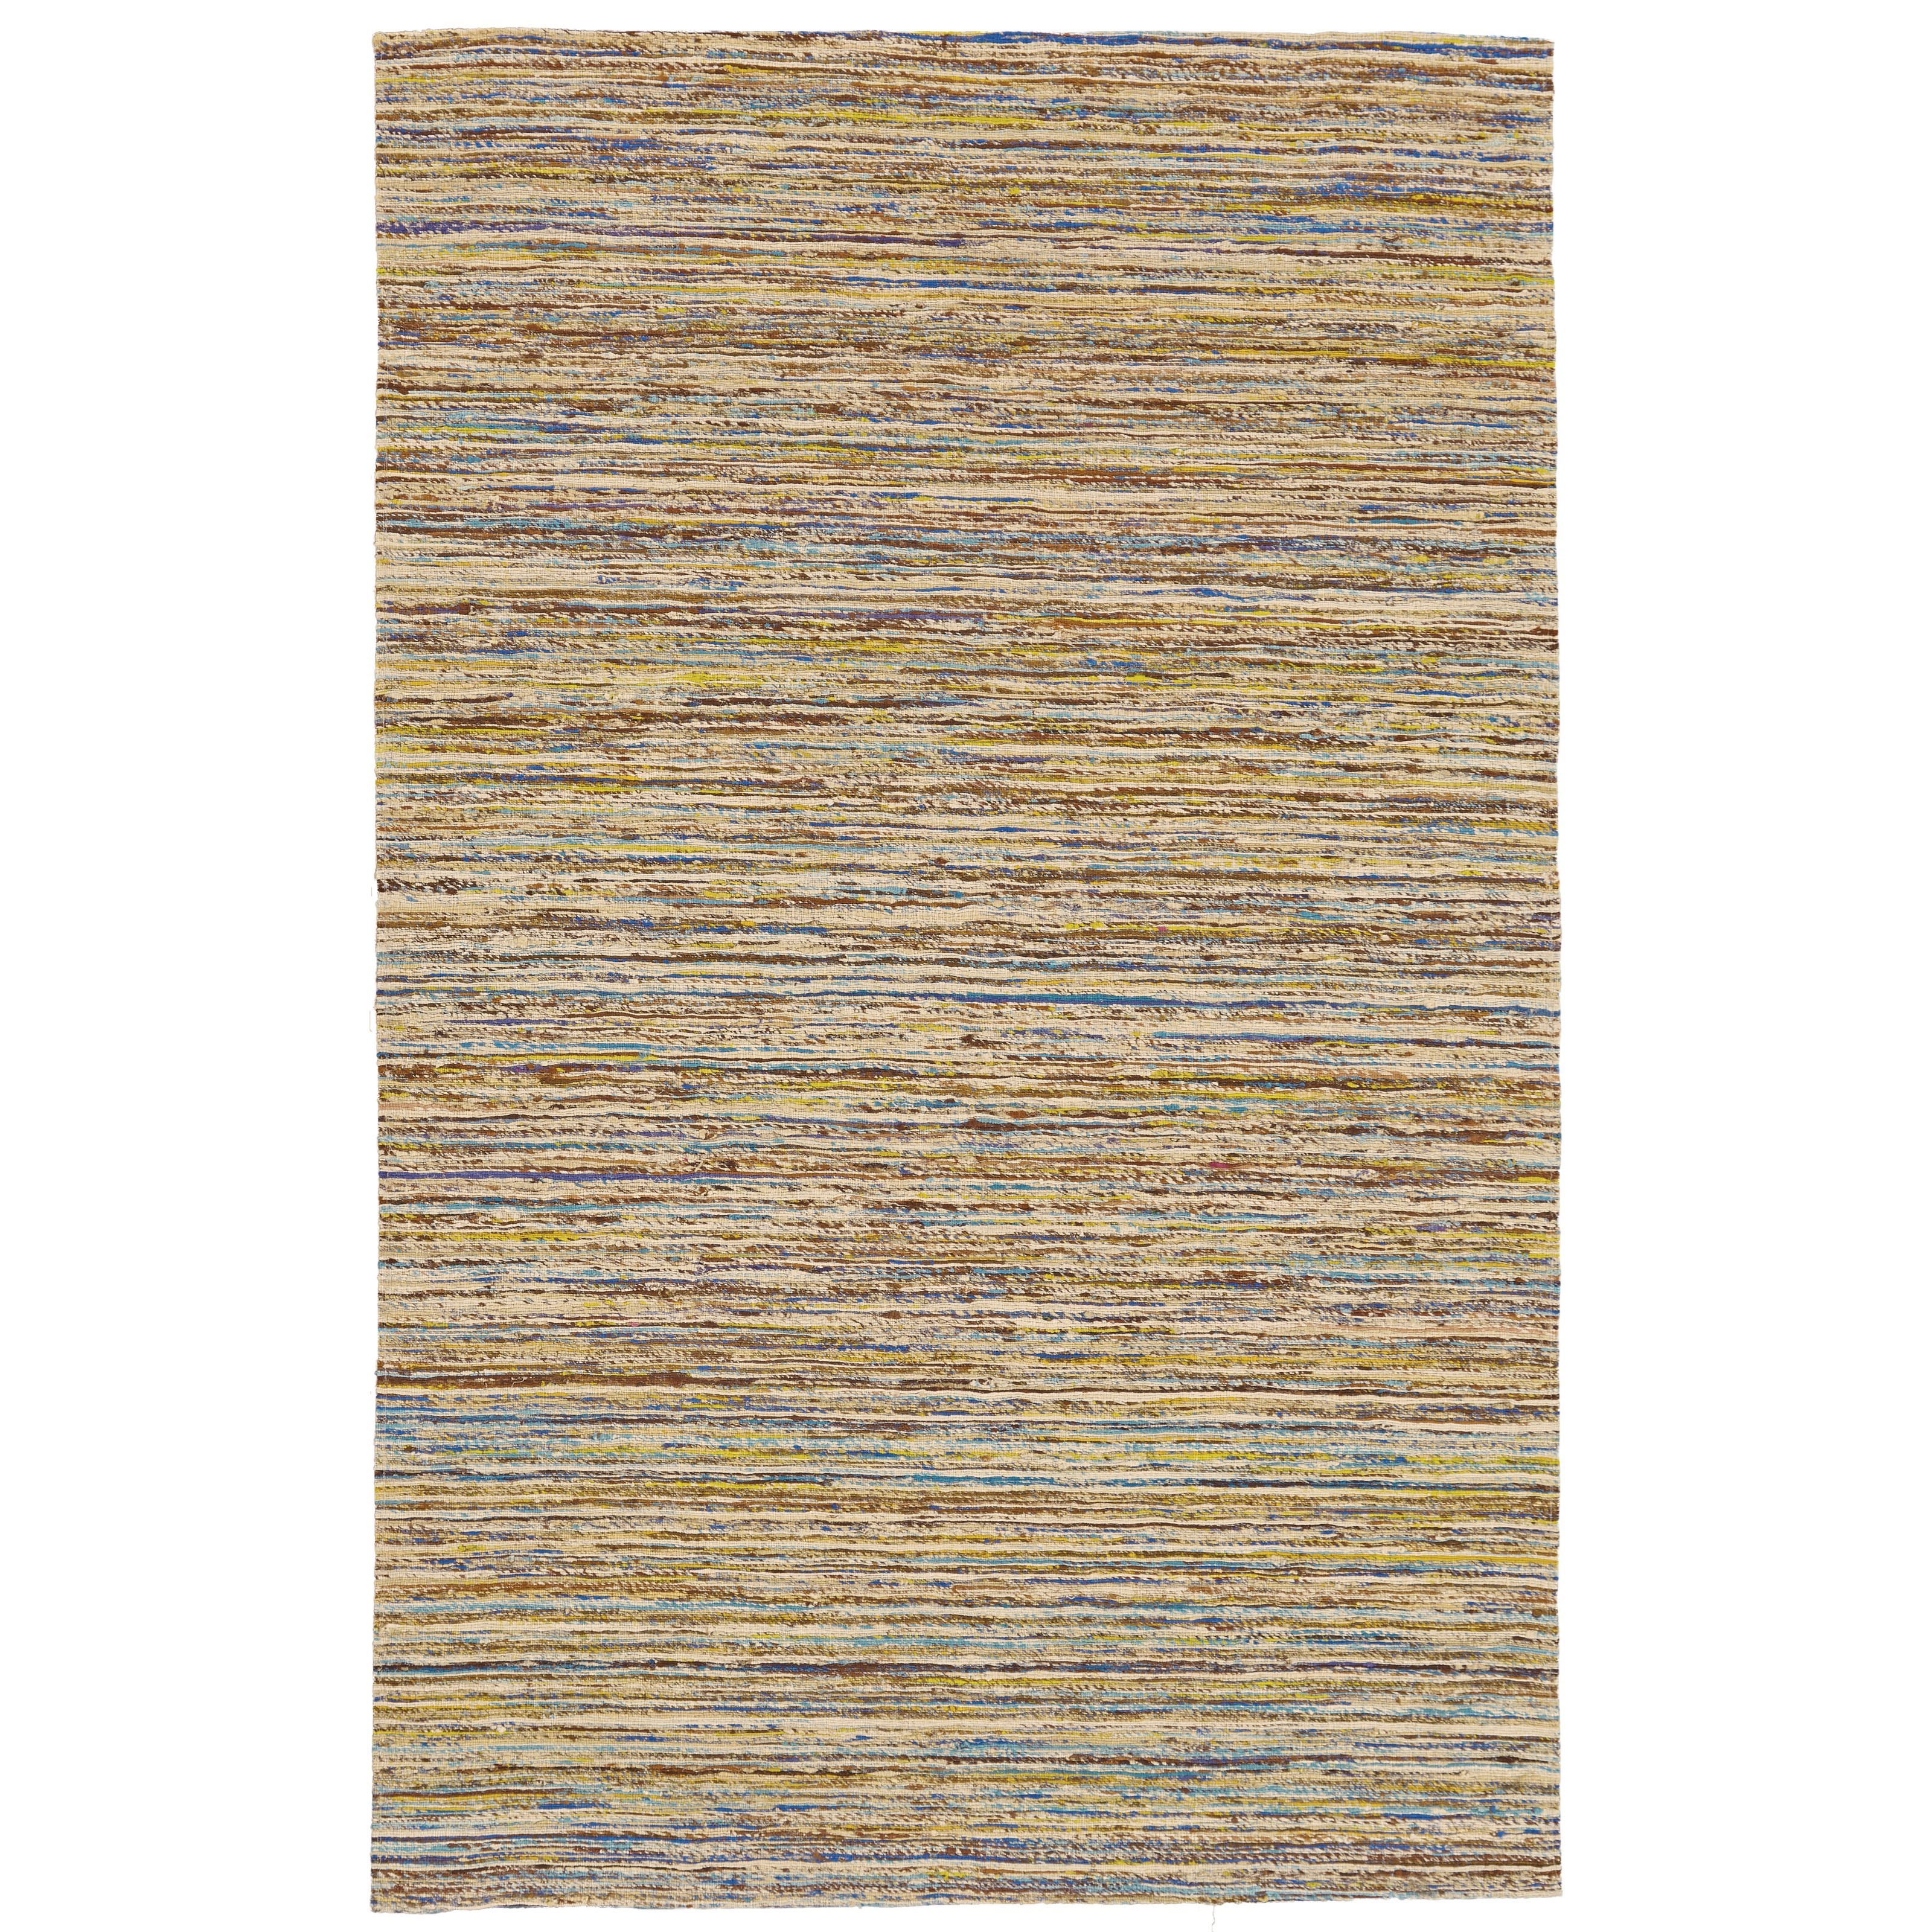 Arushi Teal/Beige 5' x 8' Area Rug by Feizy Rugs at Sprintz Furniture